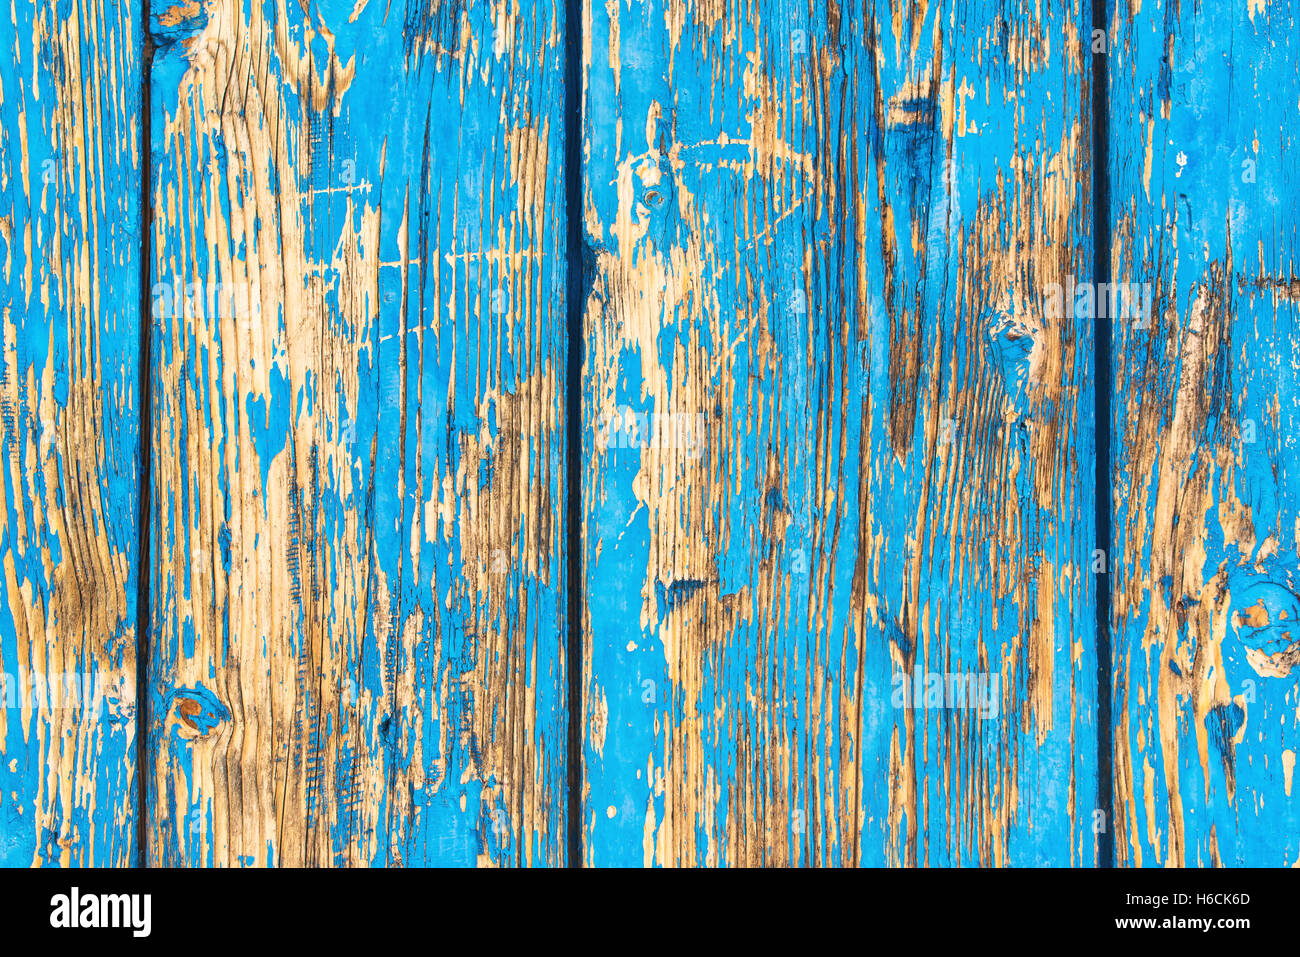 Rustic weathered planks with blue paint peeling off the surface, detailed background of wooden boards - Stock Image